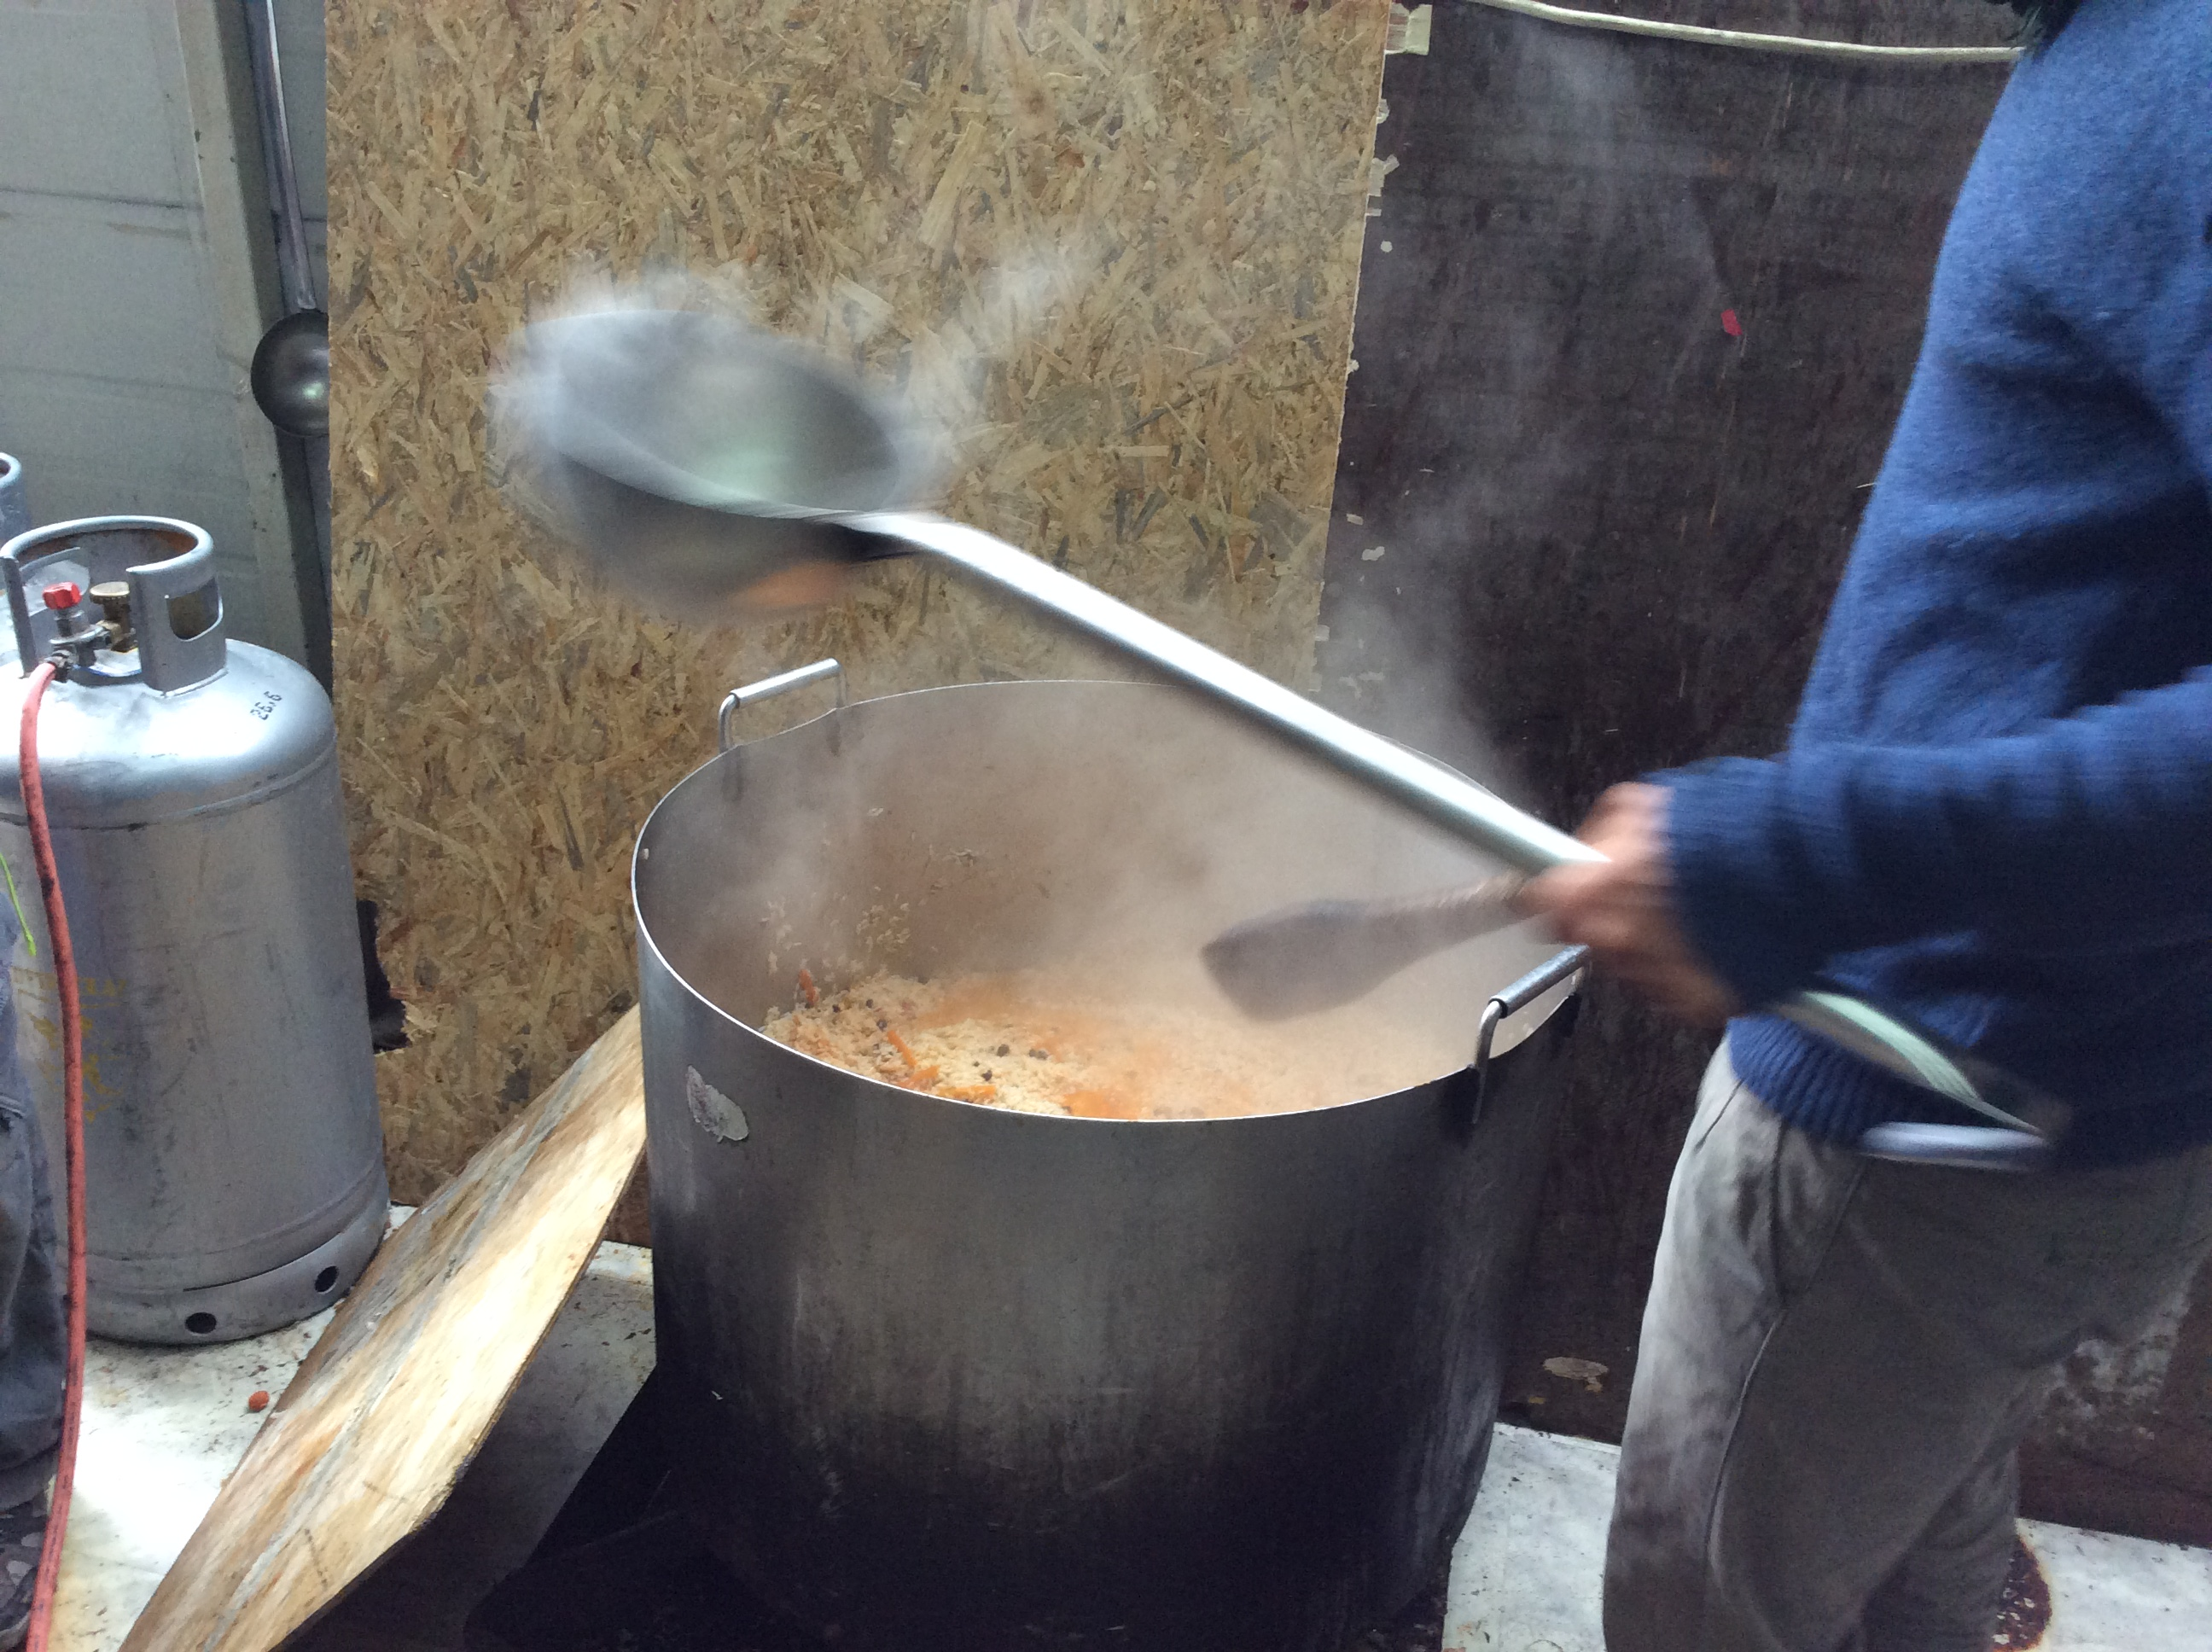 In the Social Center, Syrians and Afghans cook about 600 meals a day. (Photo: Christoph Donauer)